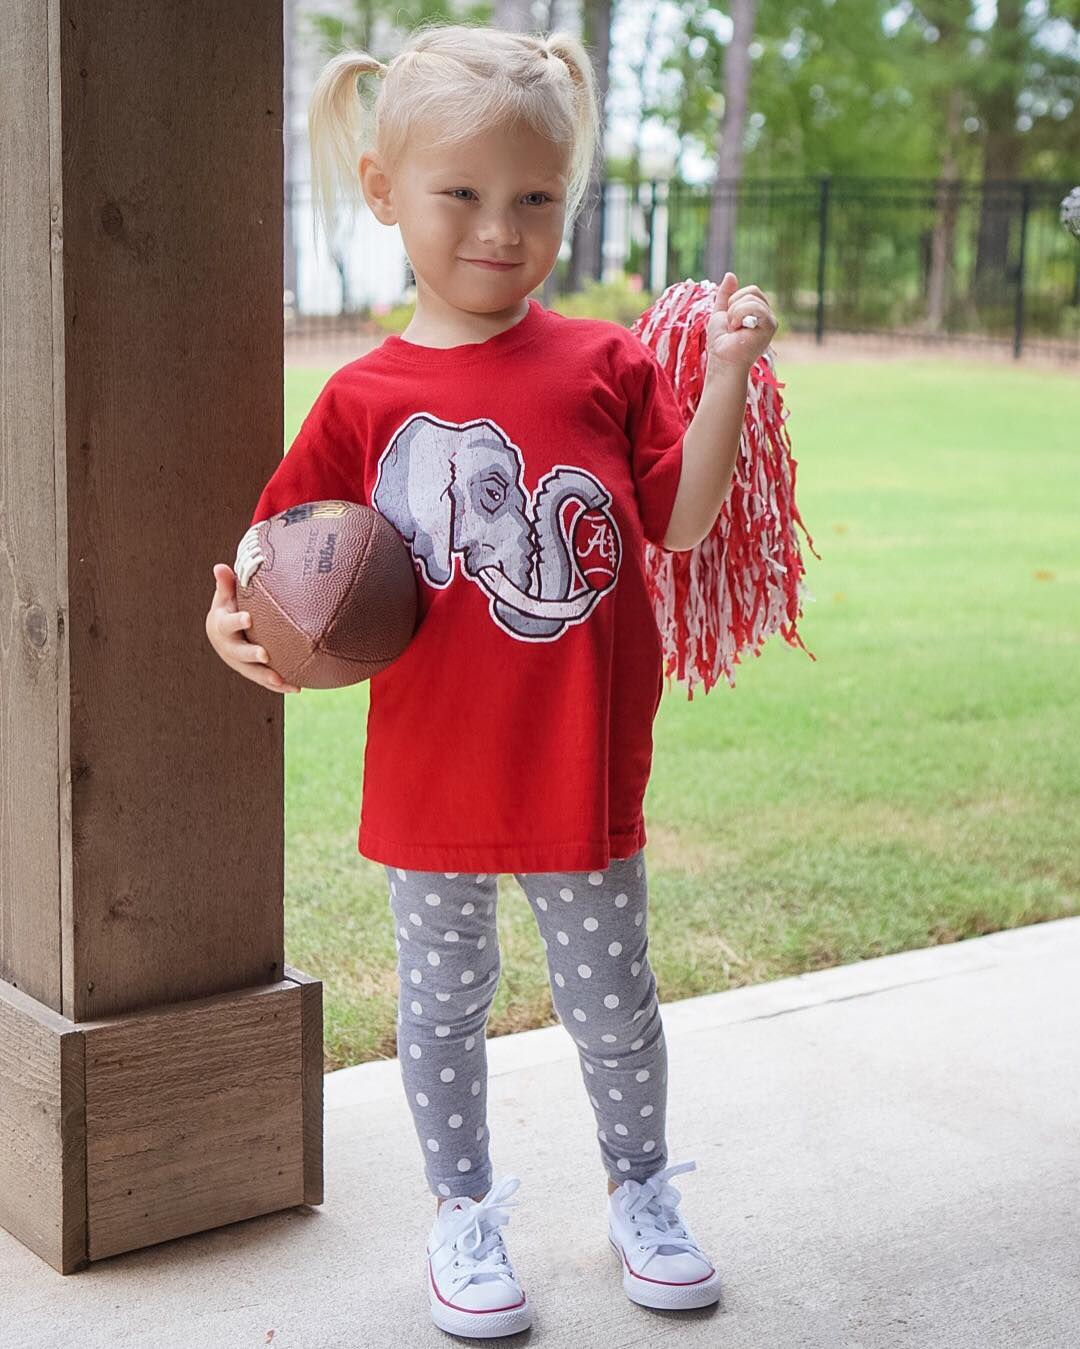 She likes football almost as much as her mama! #rolltide #lifewithblove